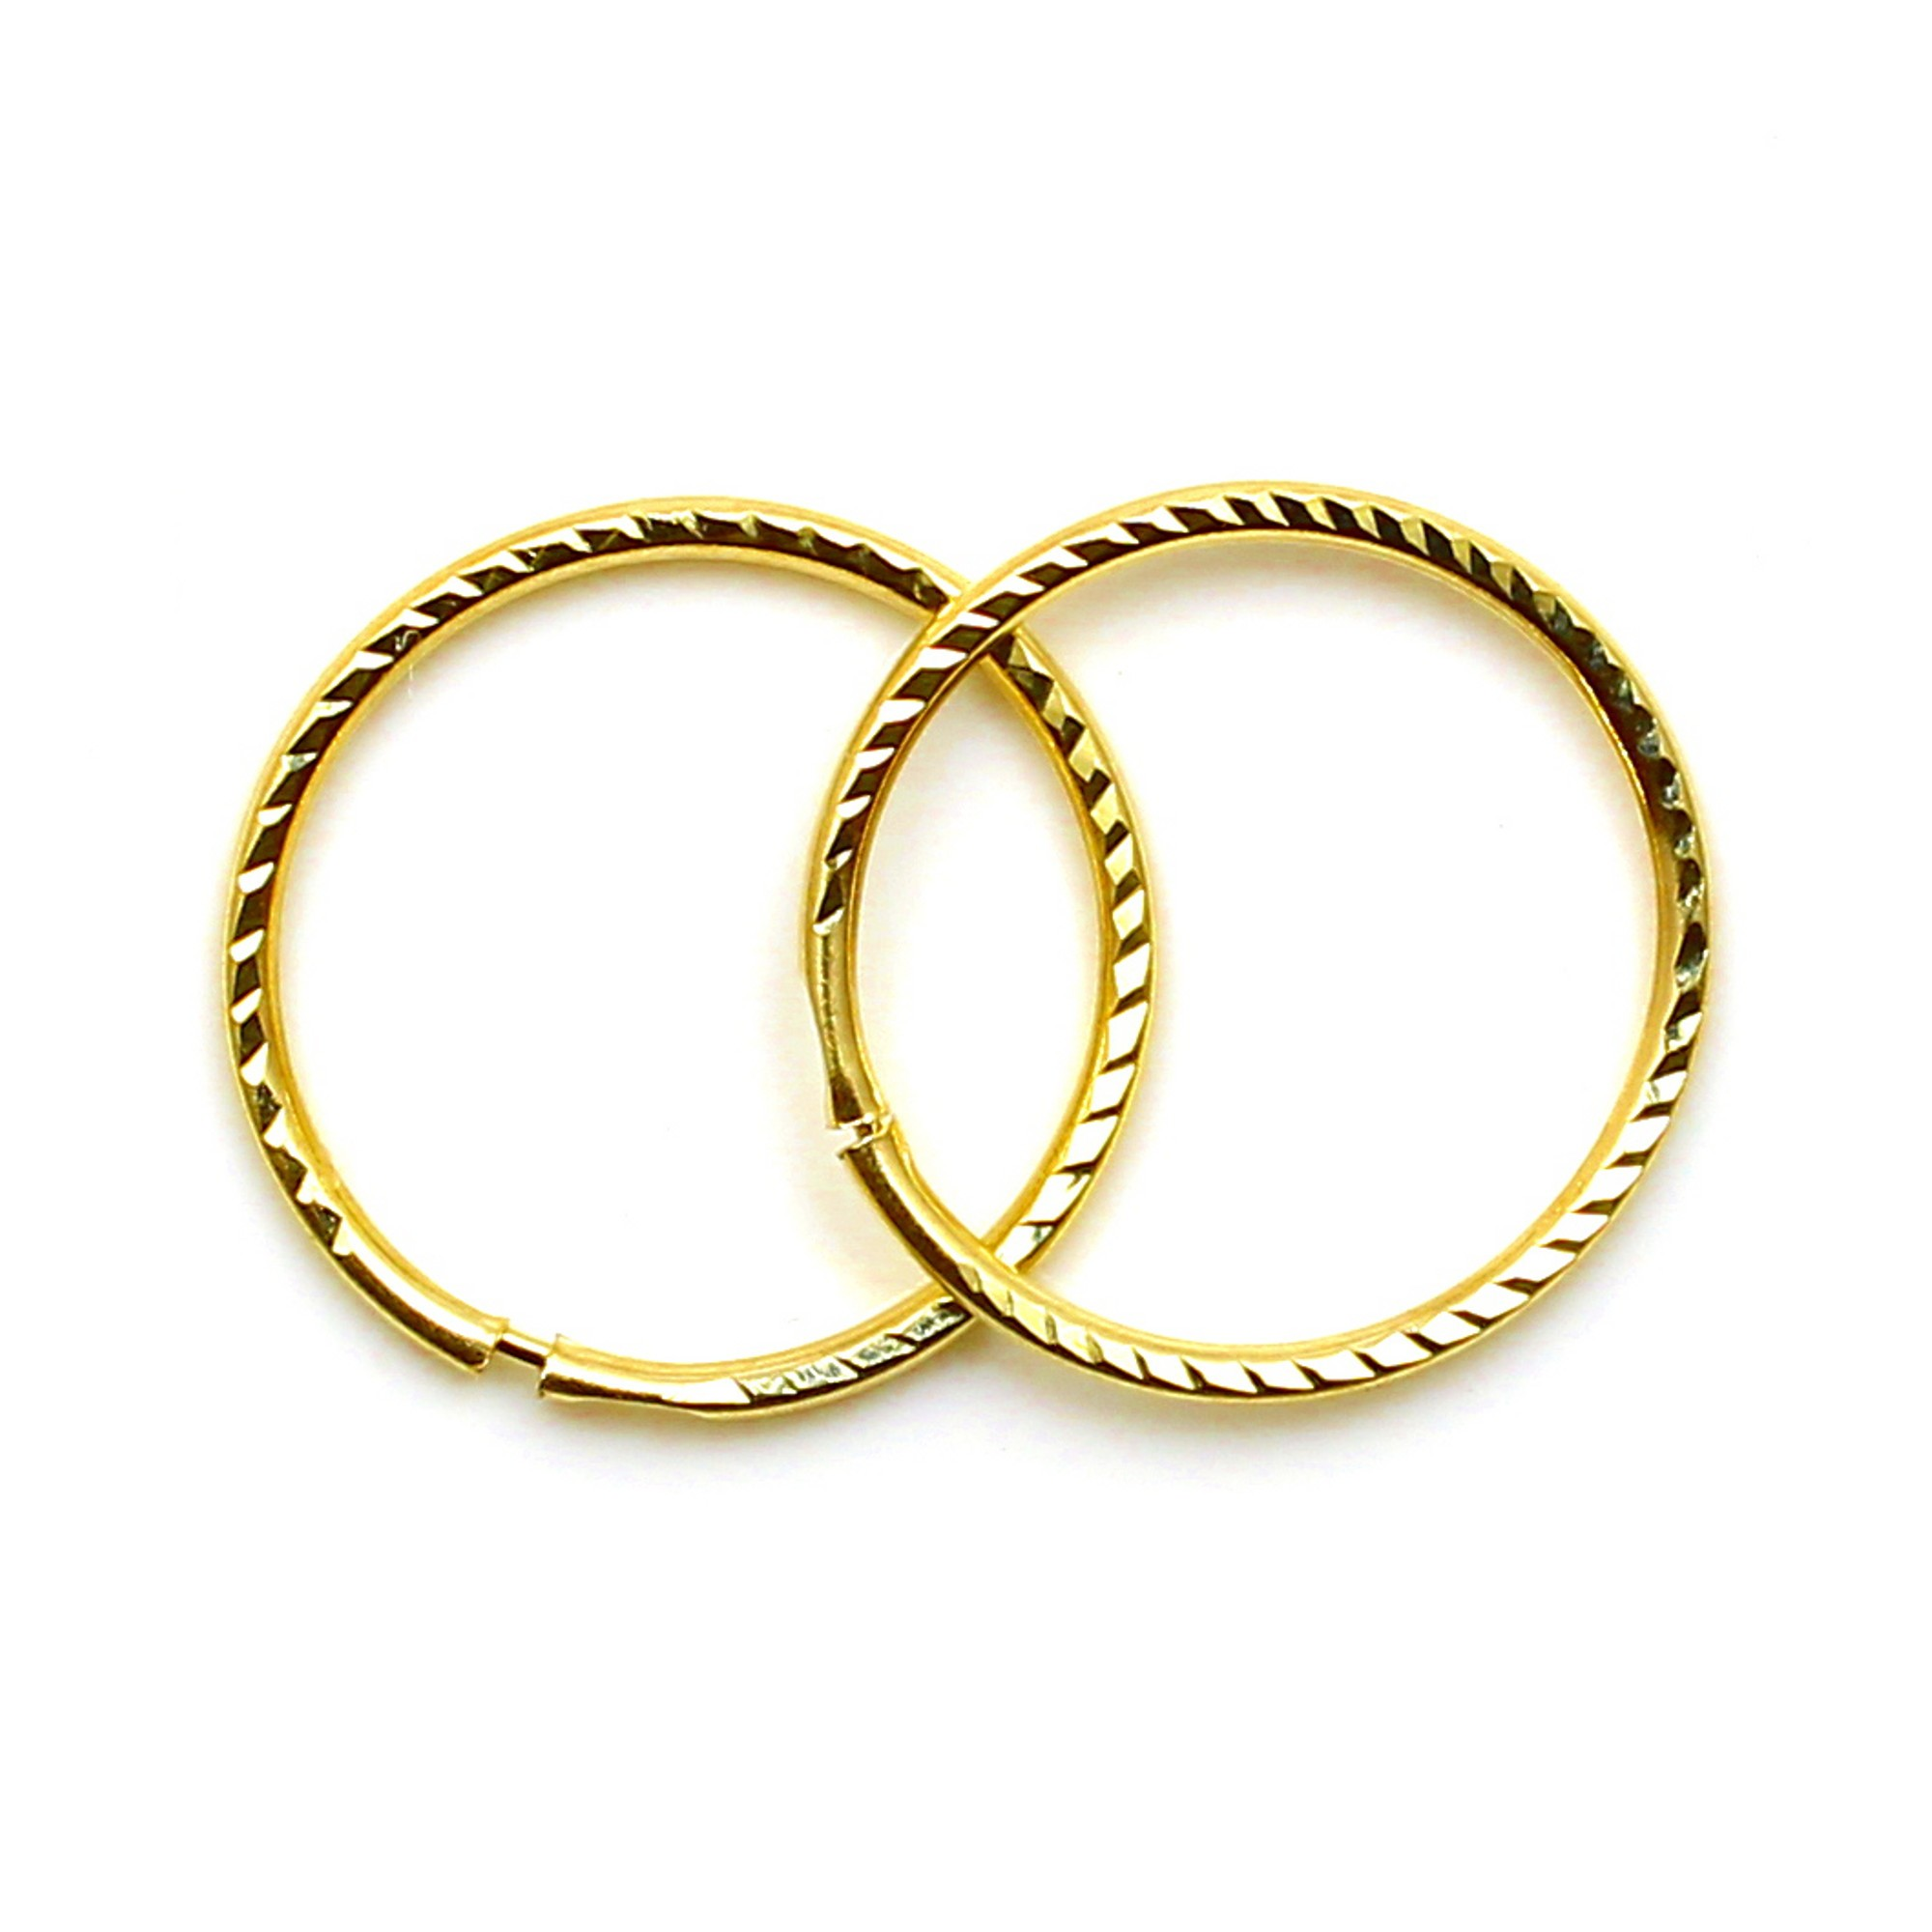 Arranview Jewellery 9ct Gold 14mm Plain Sleeper Hoops (1 Pair) W5CkX6